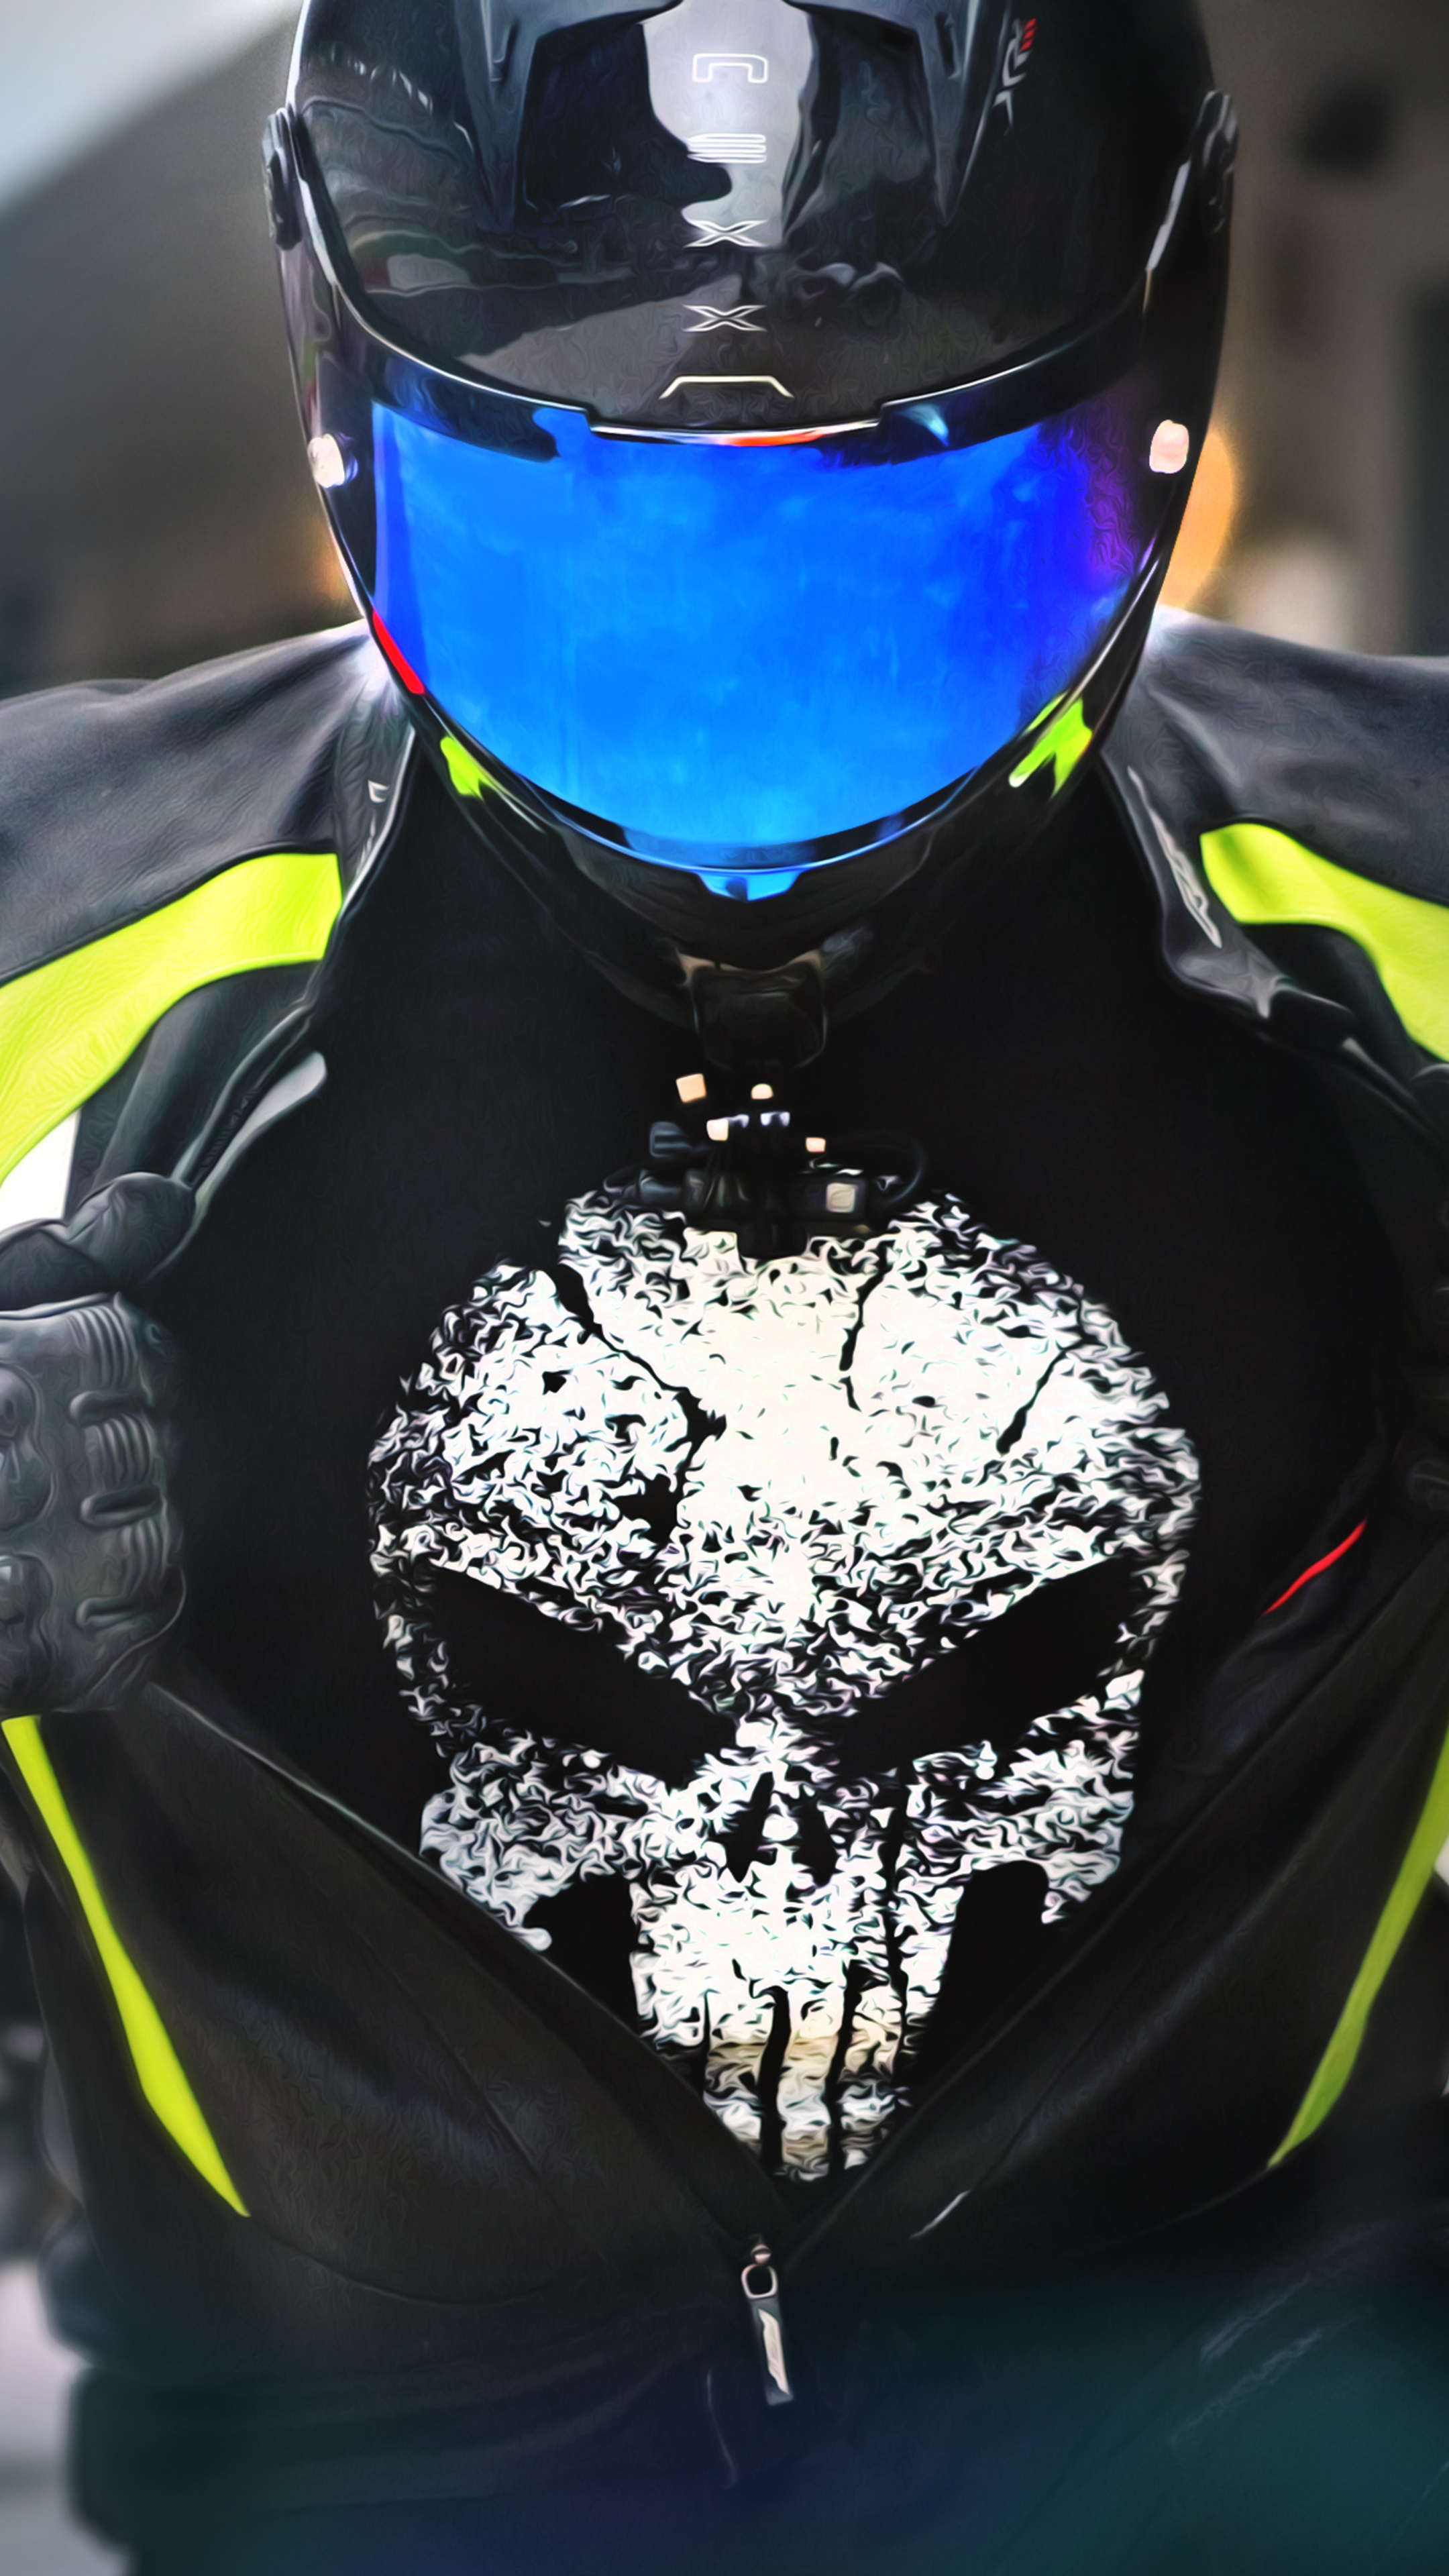 suzuki-hayabusa-rider-wearing-punisher-t-shirt-0t.jpg